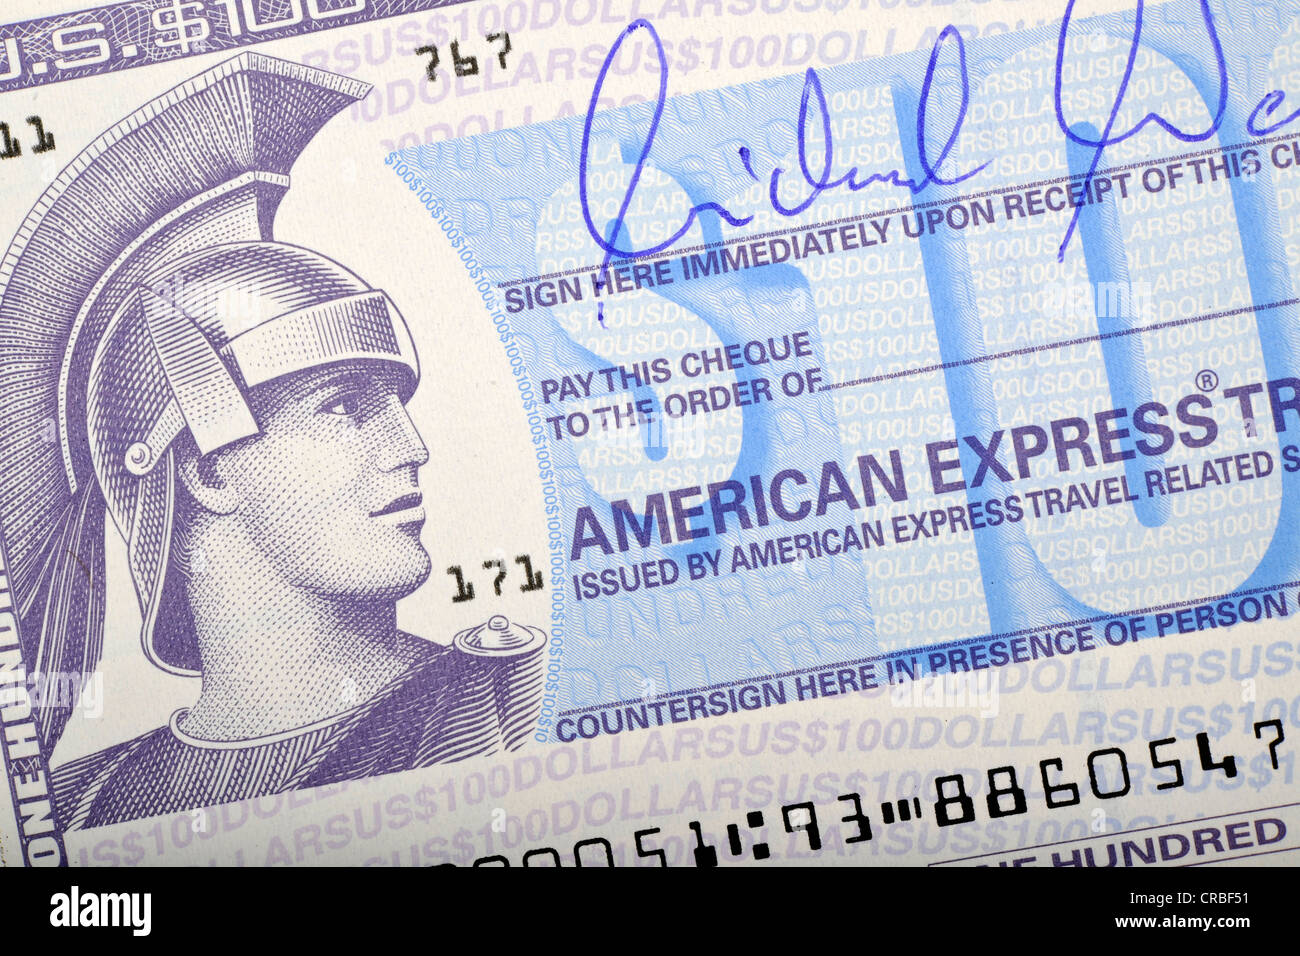 American Express Travellers Cheque, Traveller's Check - Stock Image